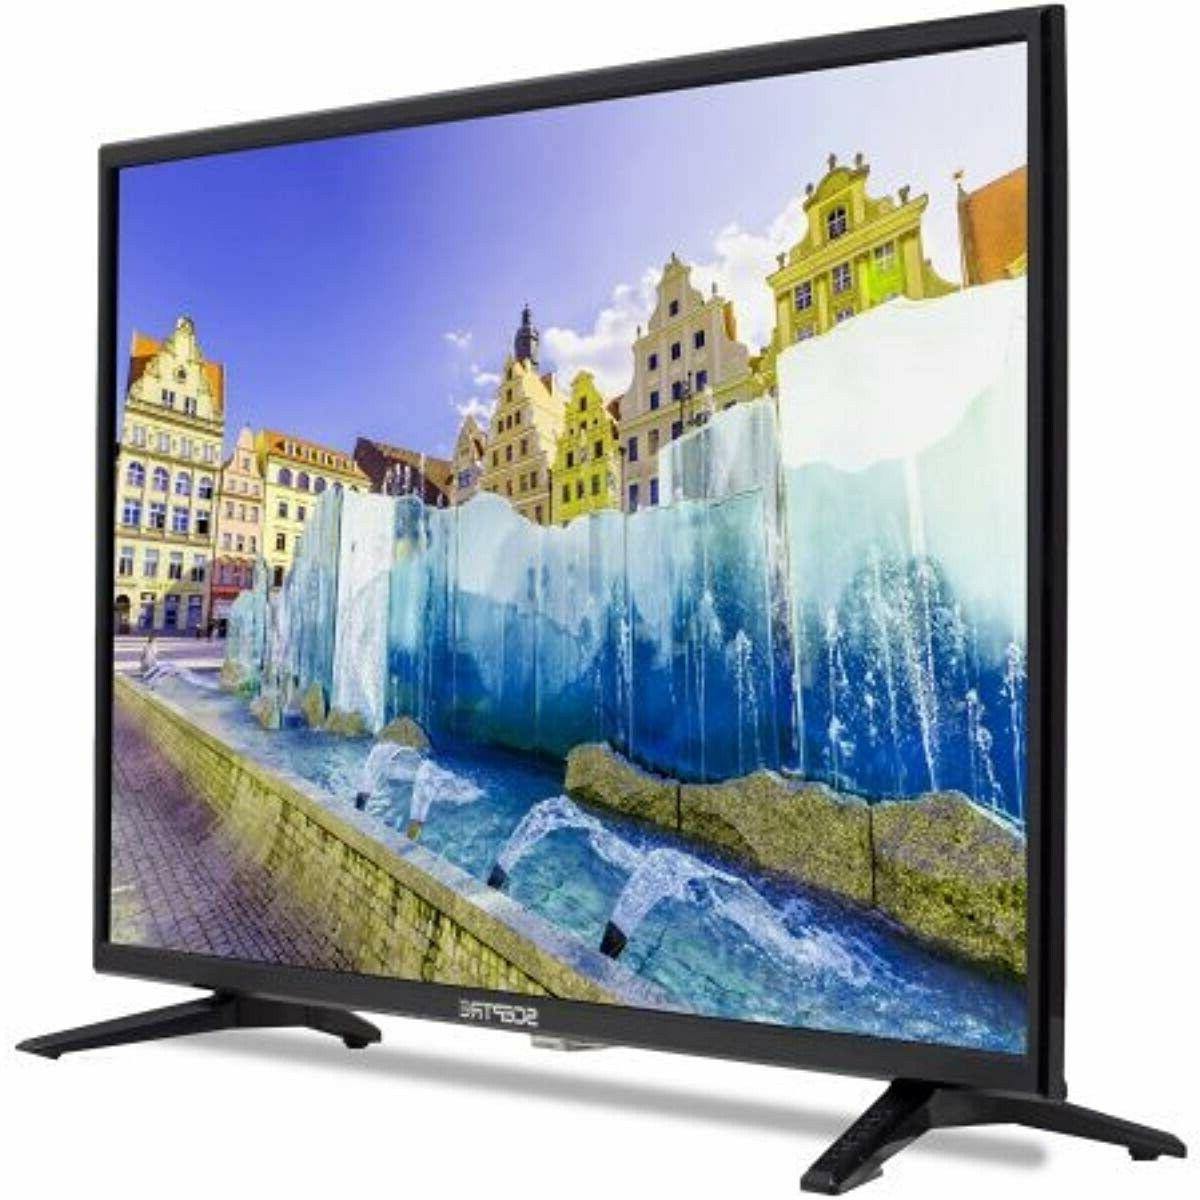 """Home 32"""" LED TV BY Dreamsales"""